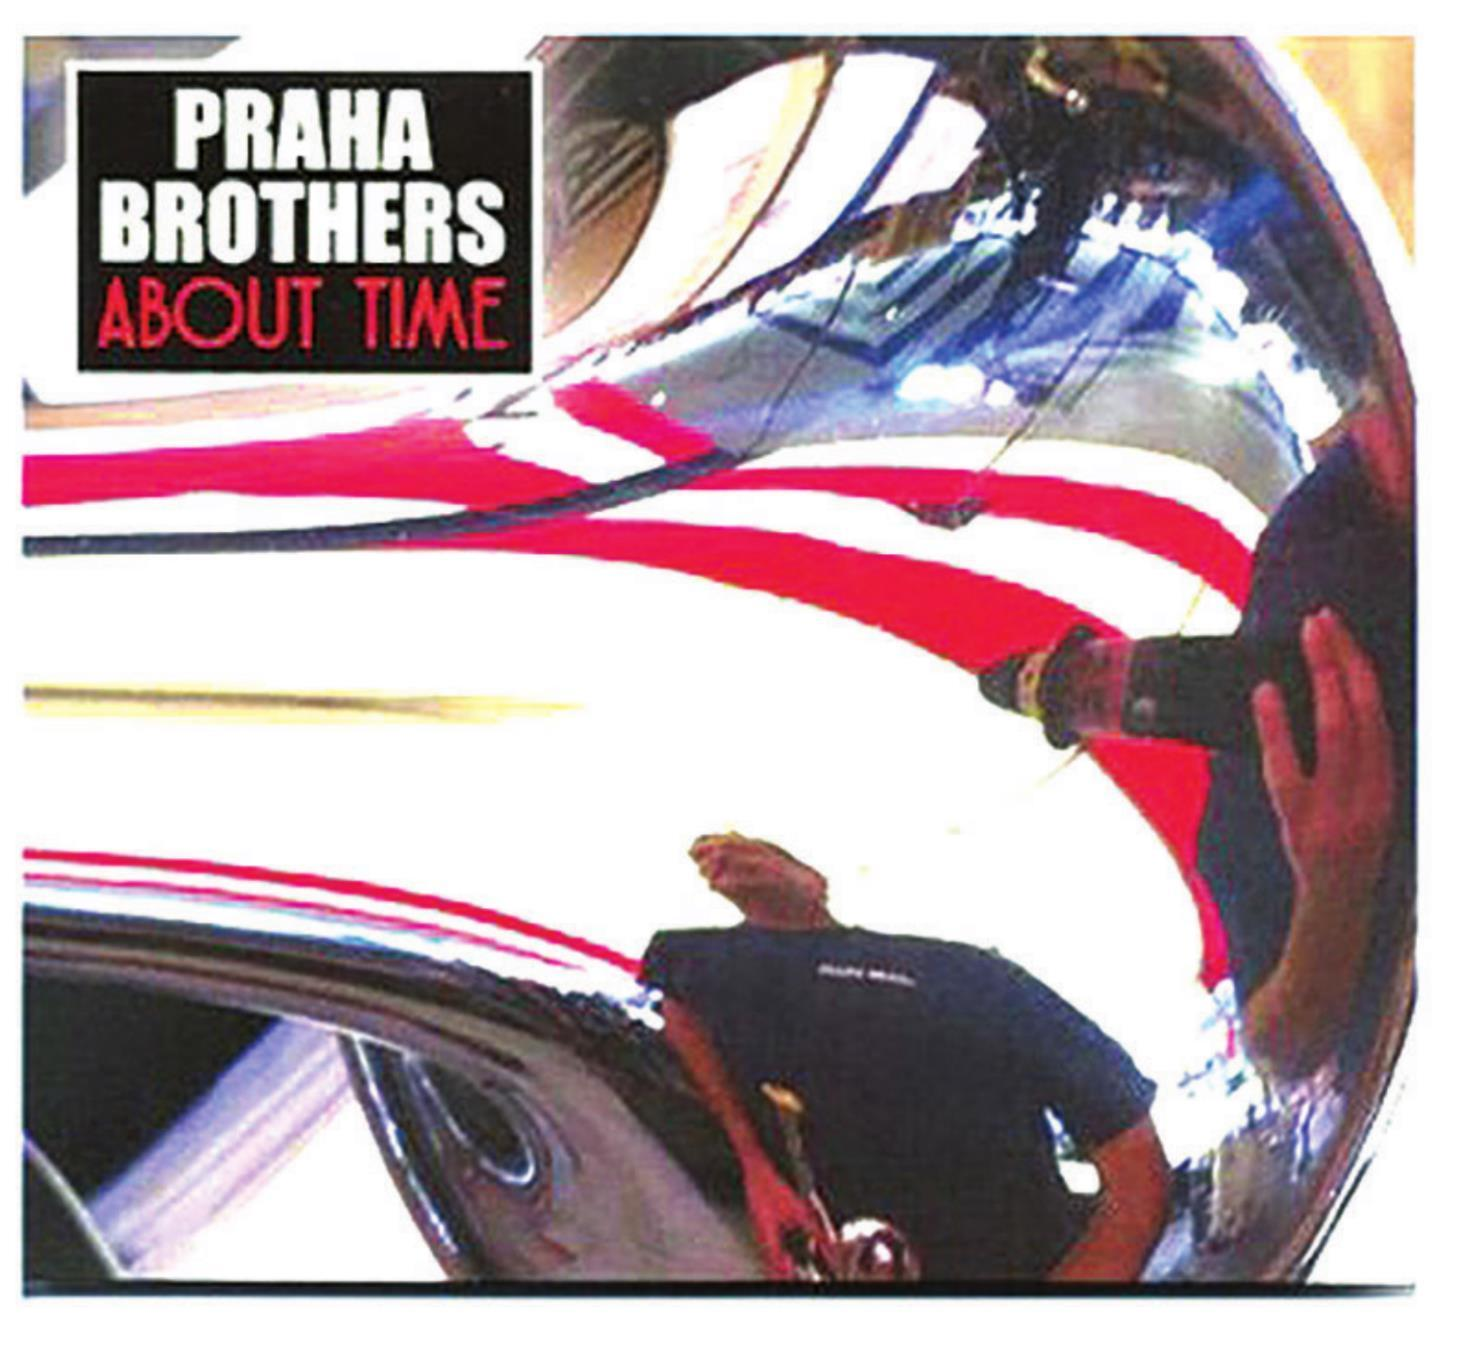 Praha Brothers , About Time at the Right Time